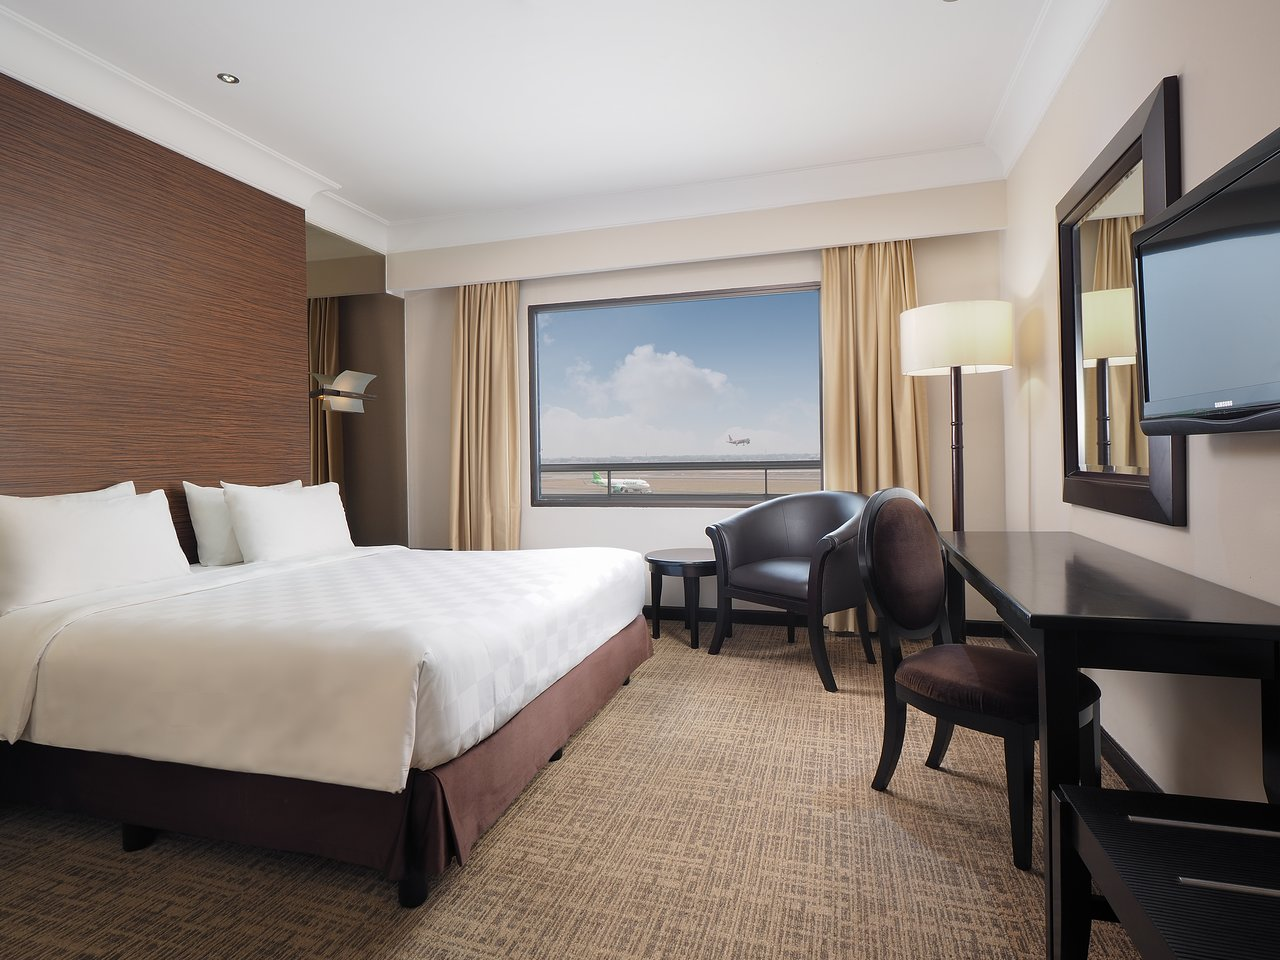 Jakarta Airport Hotel Managed By Topotels 33 7 4 Prices Reviews Tangerang Indonesia Tripadvisor